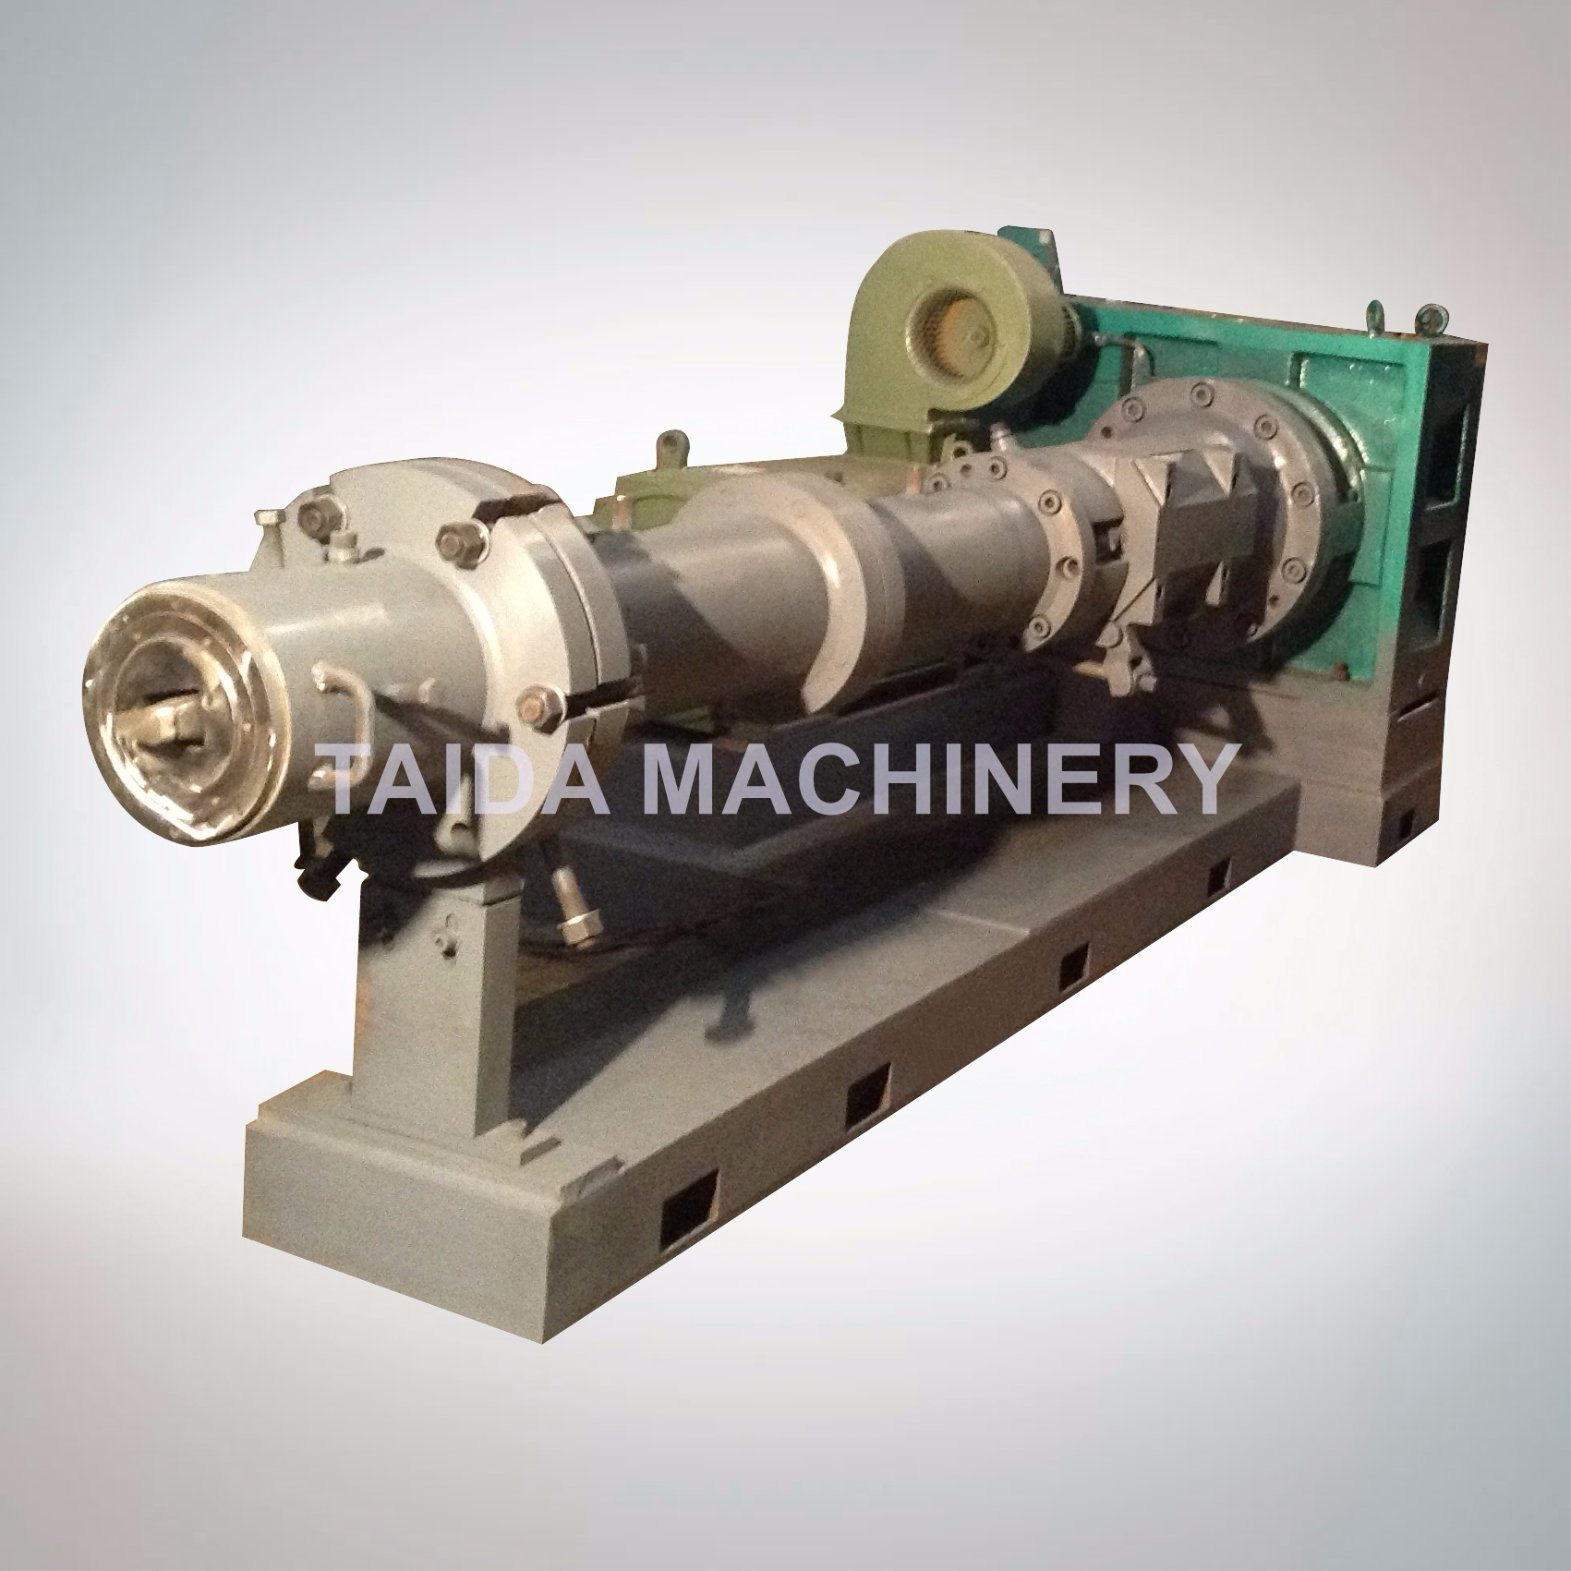 Xjwp-150 Vacuum Cold Feed Rubber Extruder Extrusion Machine Manufacturers Factory Plant